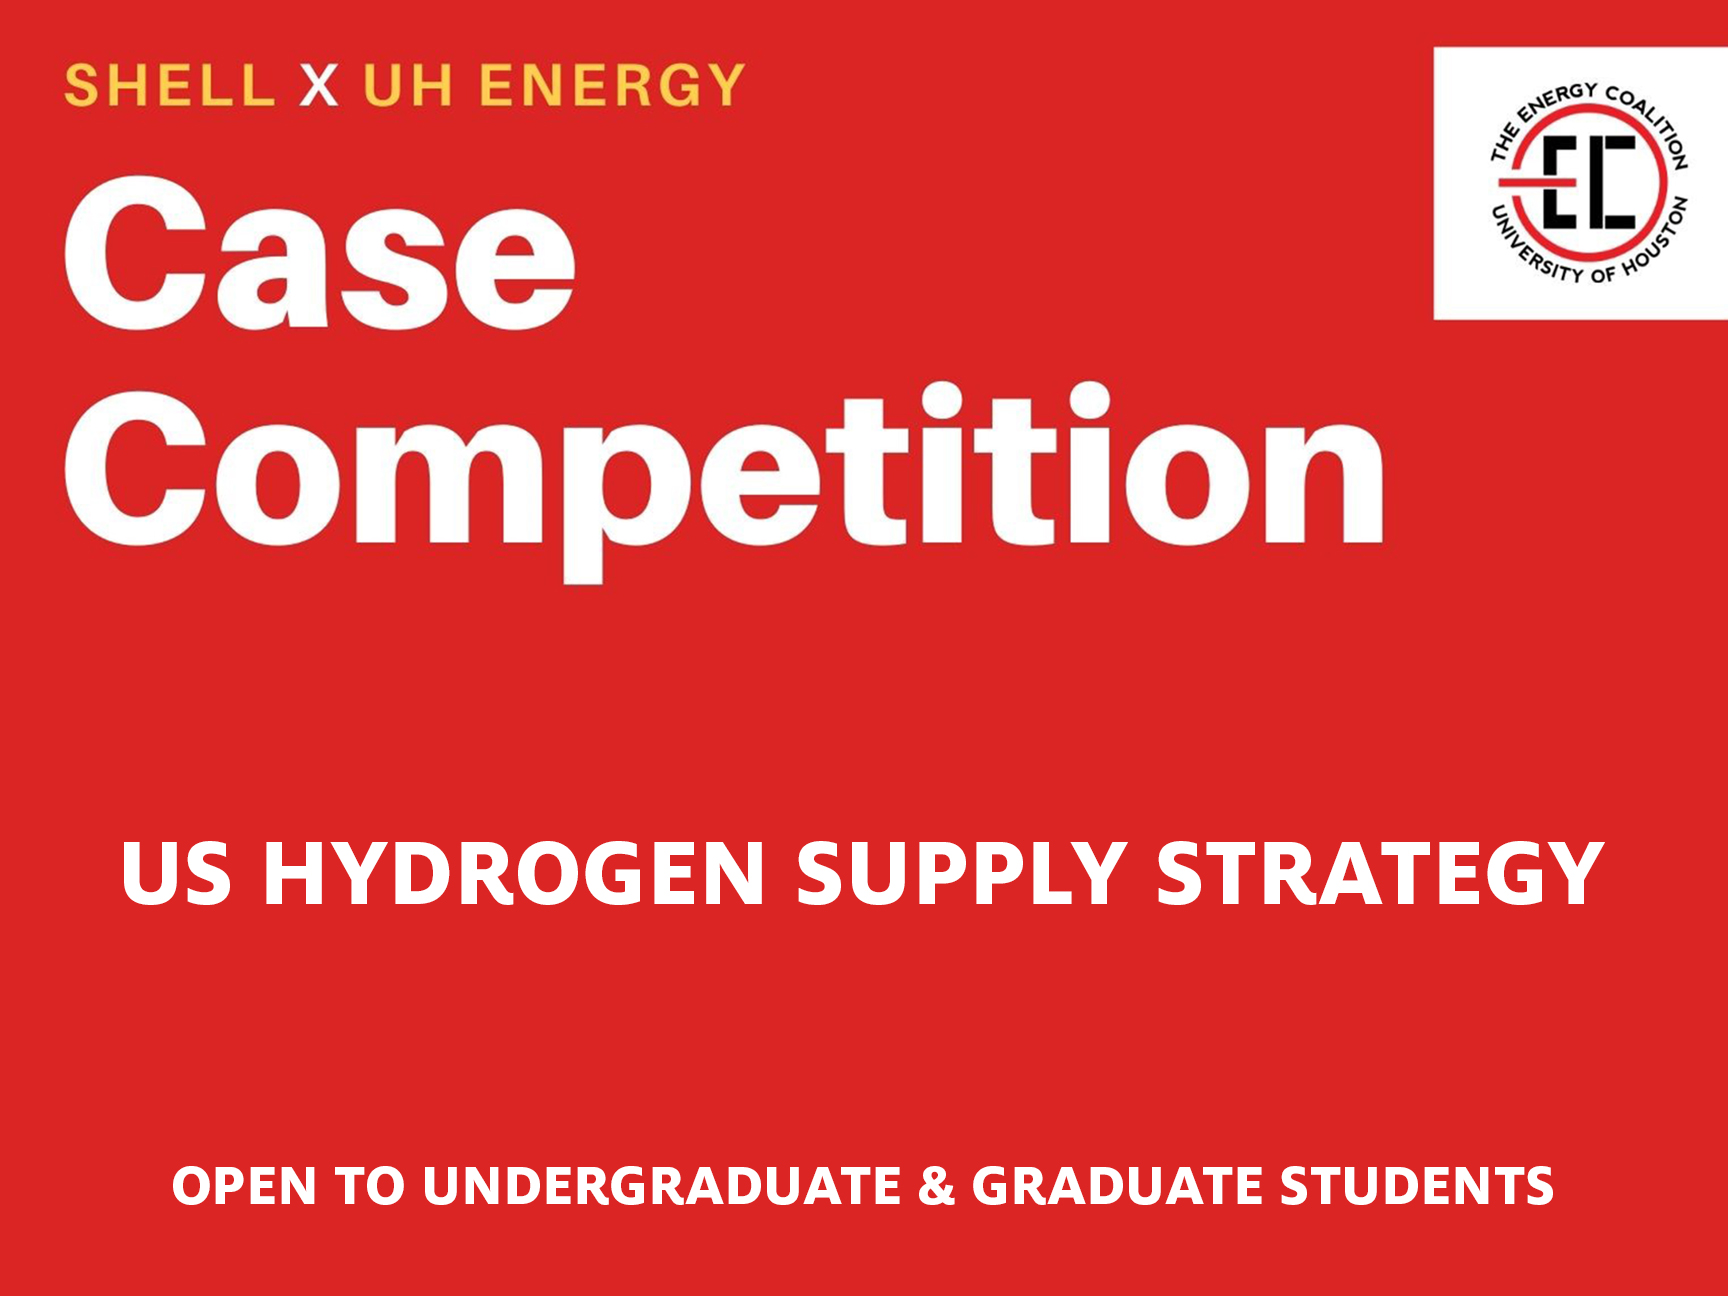 Shell Case Competition on US Hydrogen Supply Image